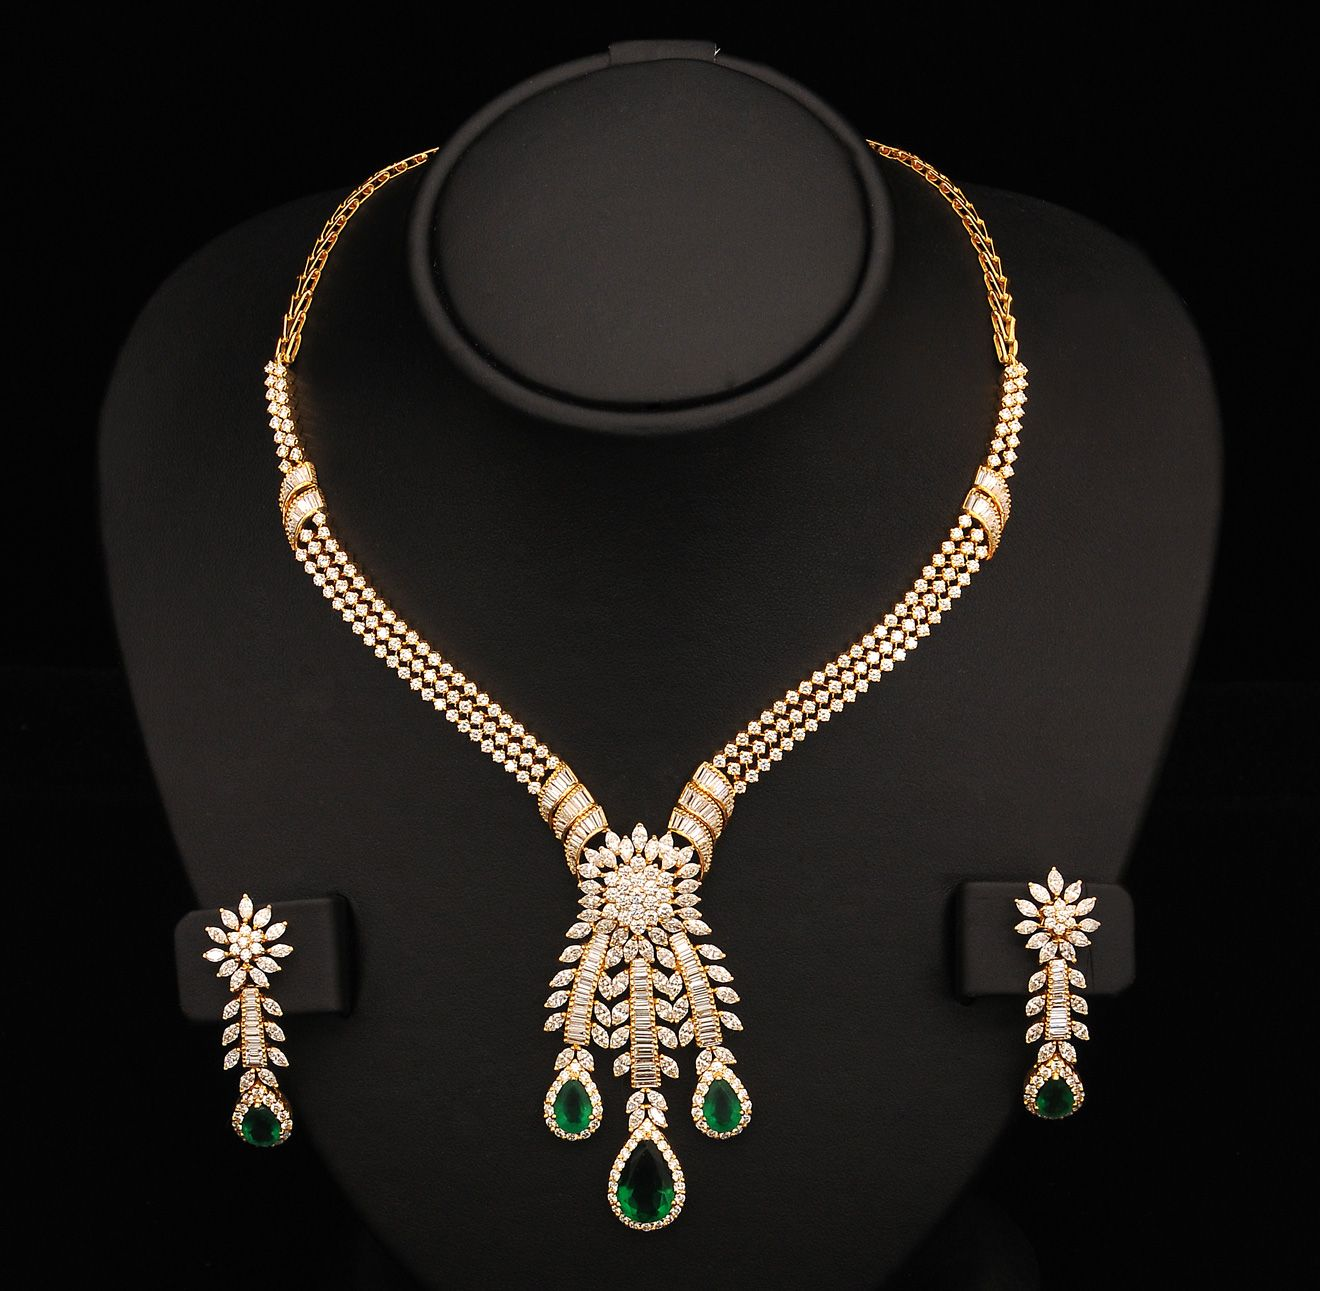 irvlst jewelry diamond pretty indian for south jewellery necklace latest design womendesigner necklaces